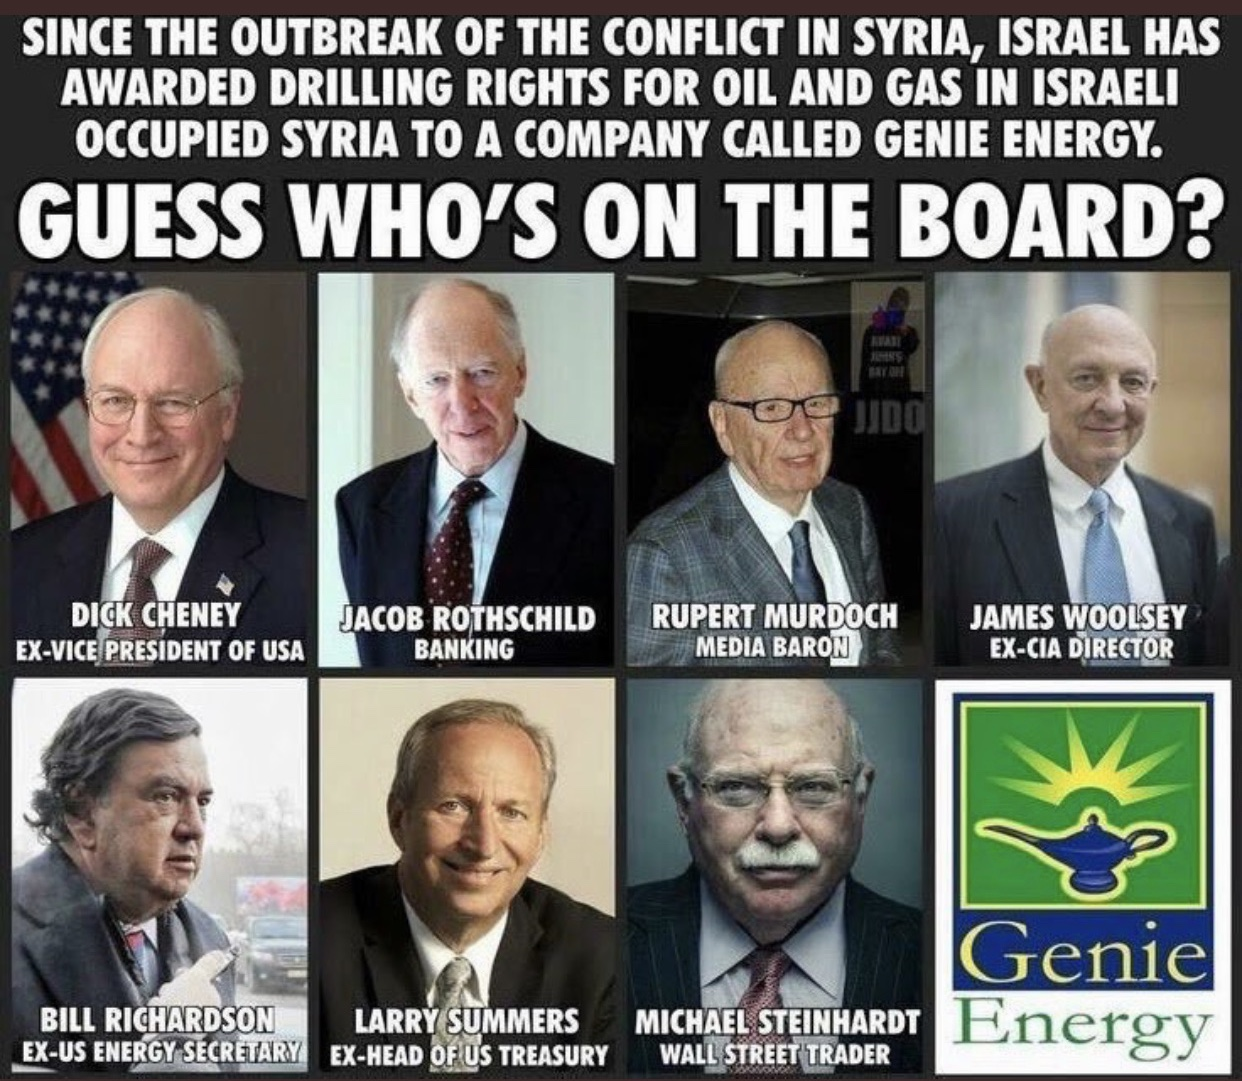 Genie Energy and Rupert Murdoch, Owner of FoxNews its Hidden Role in the War on Syria